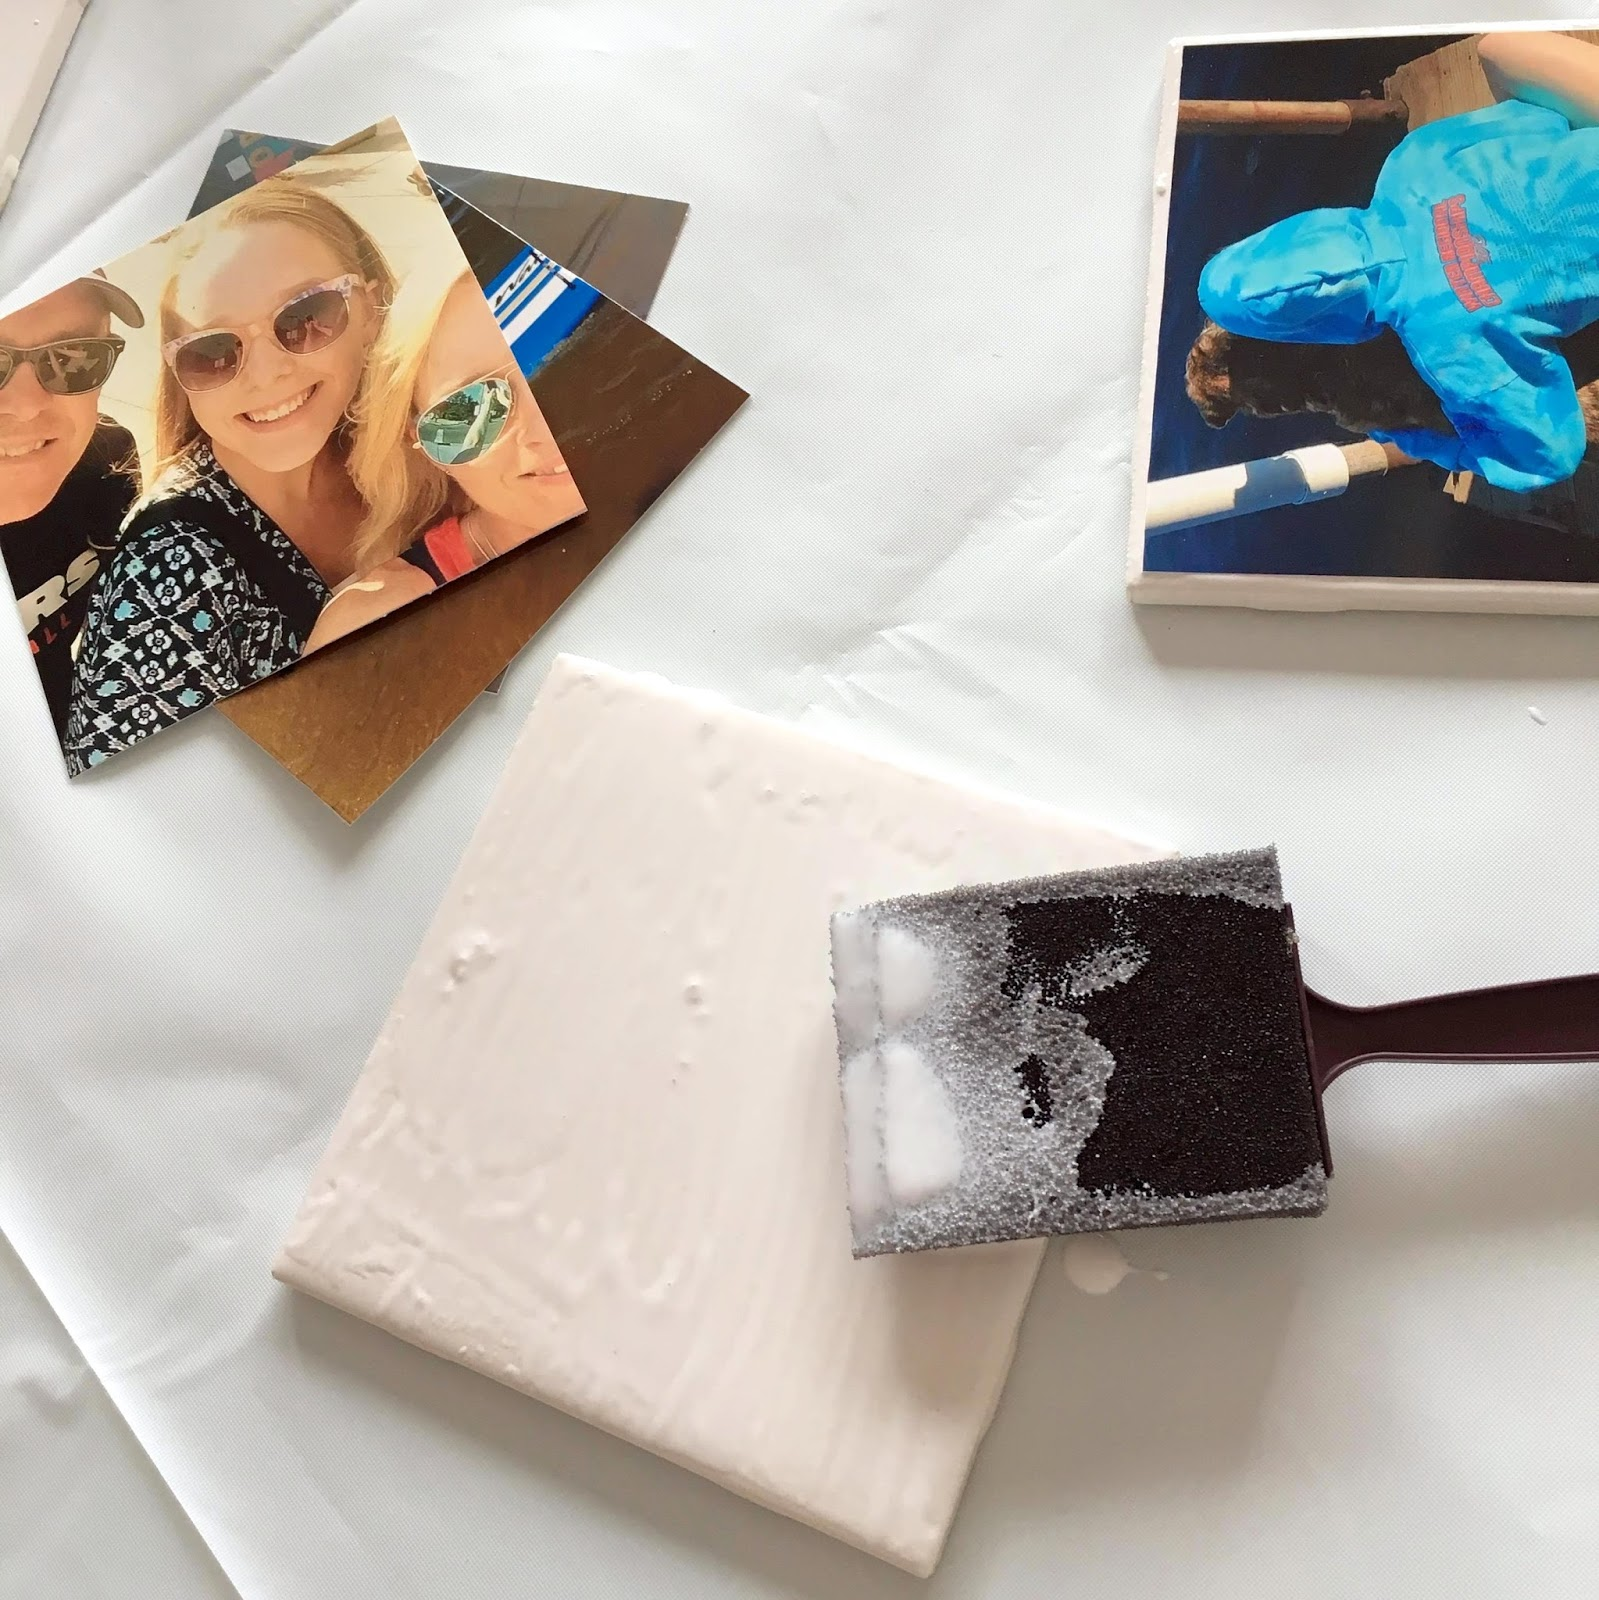 To personalize your coasters, layer Mod Podge over the top of the photo using even strokes.